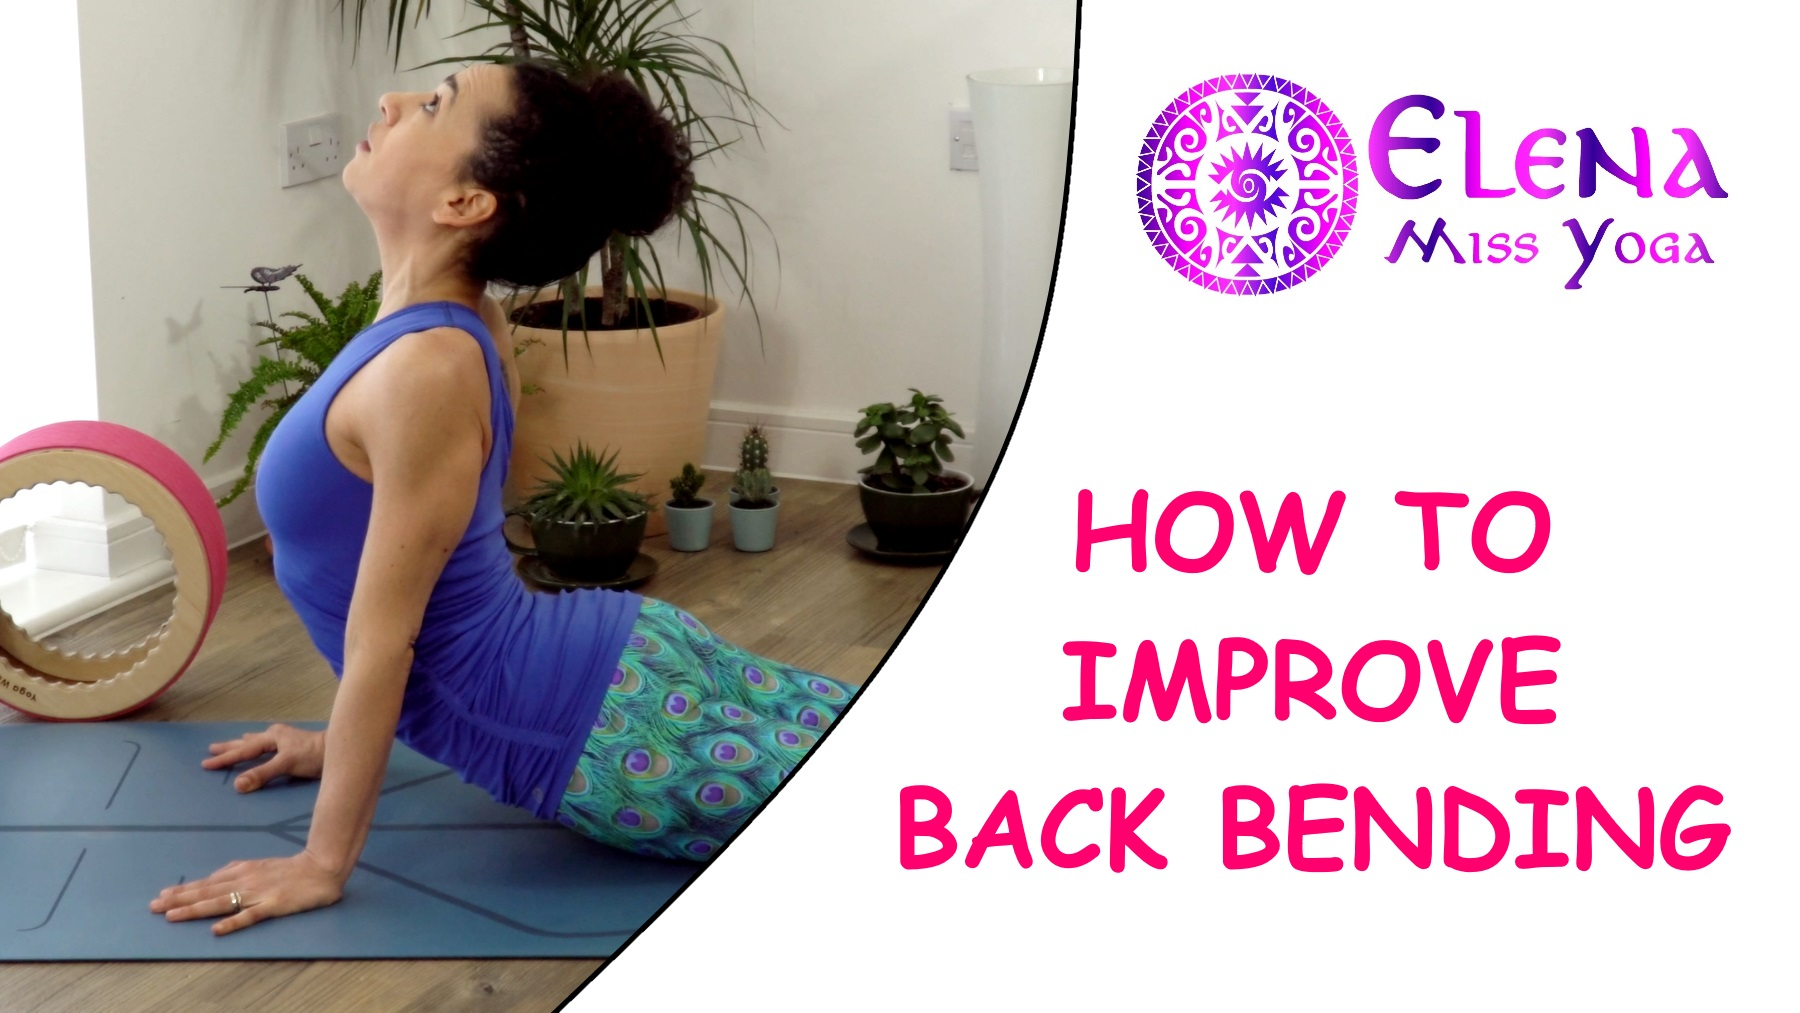 HOW TO IMPROVE BACK BENDING